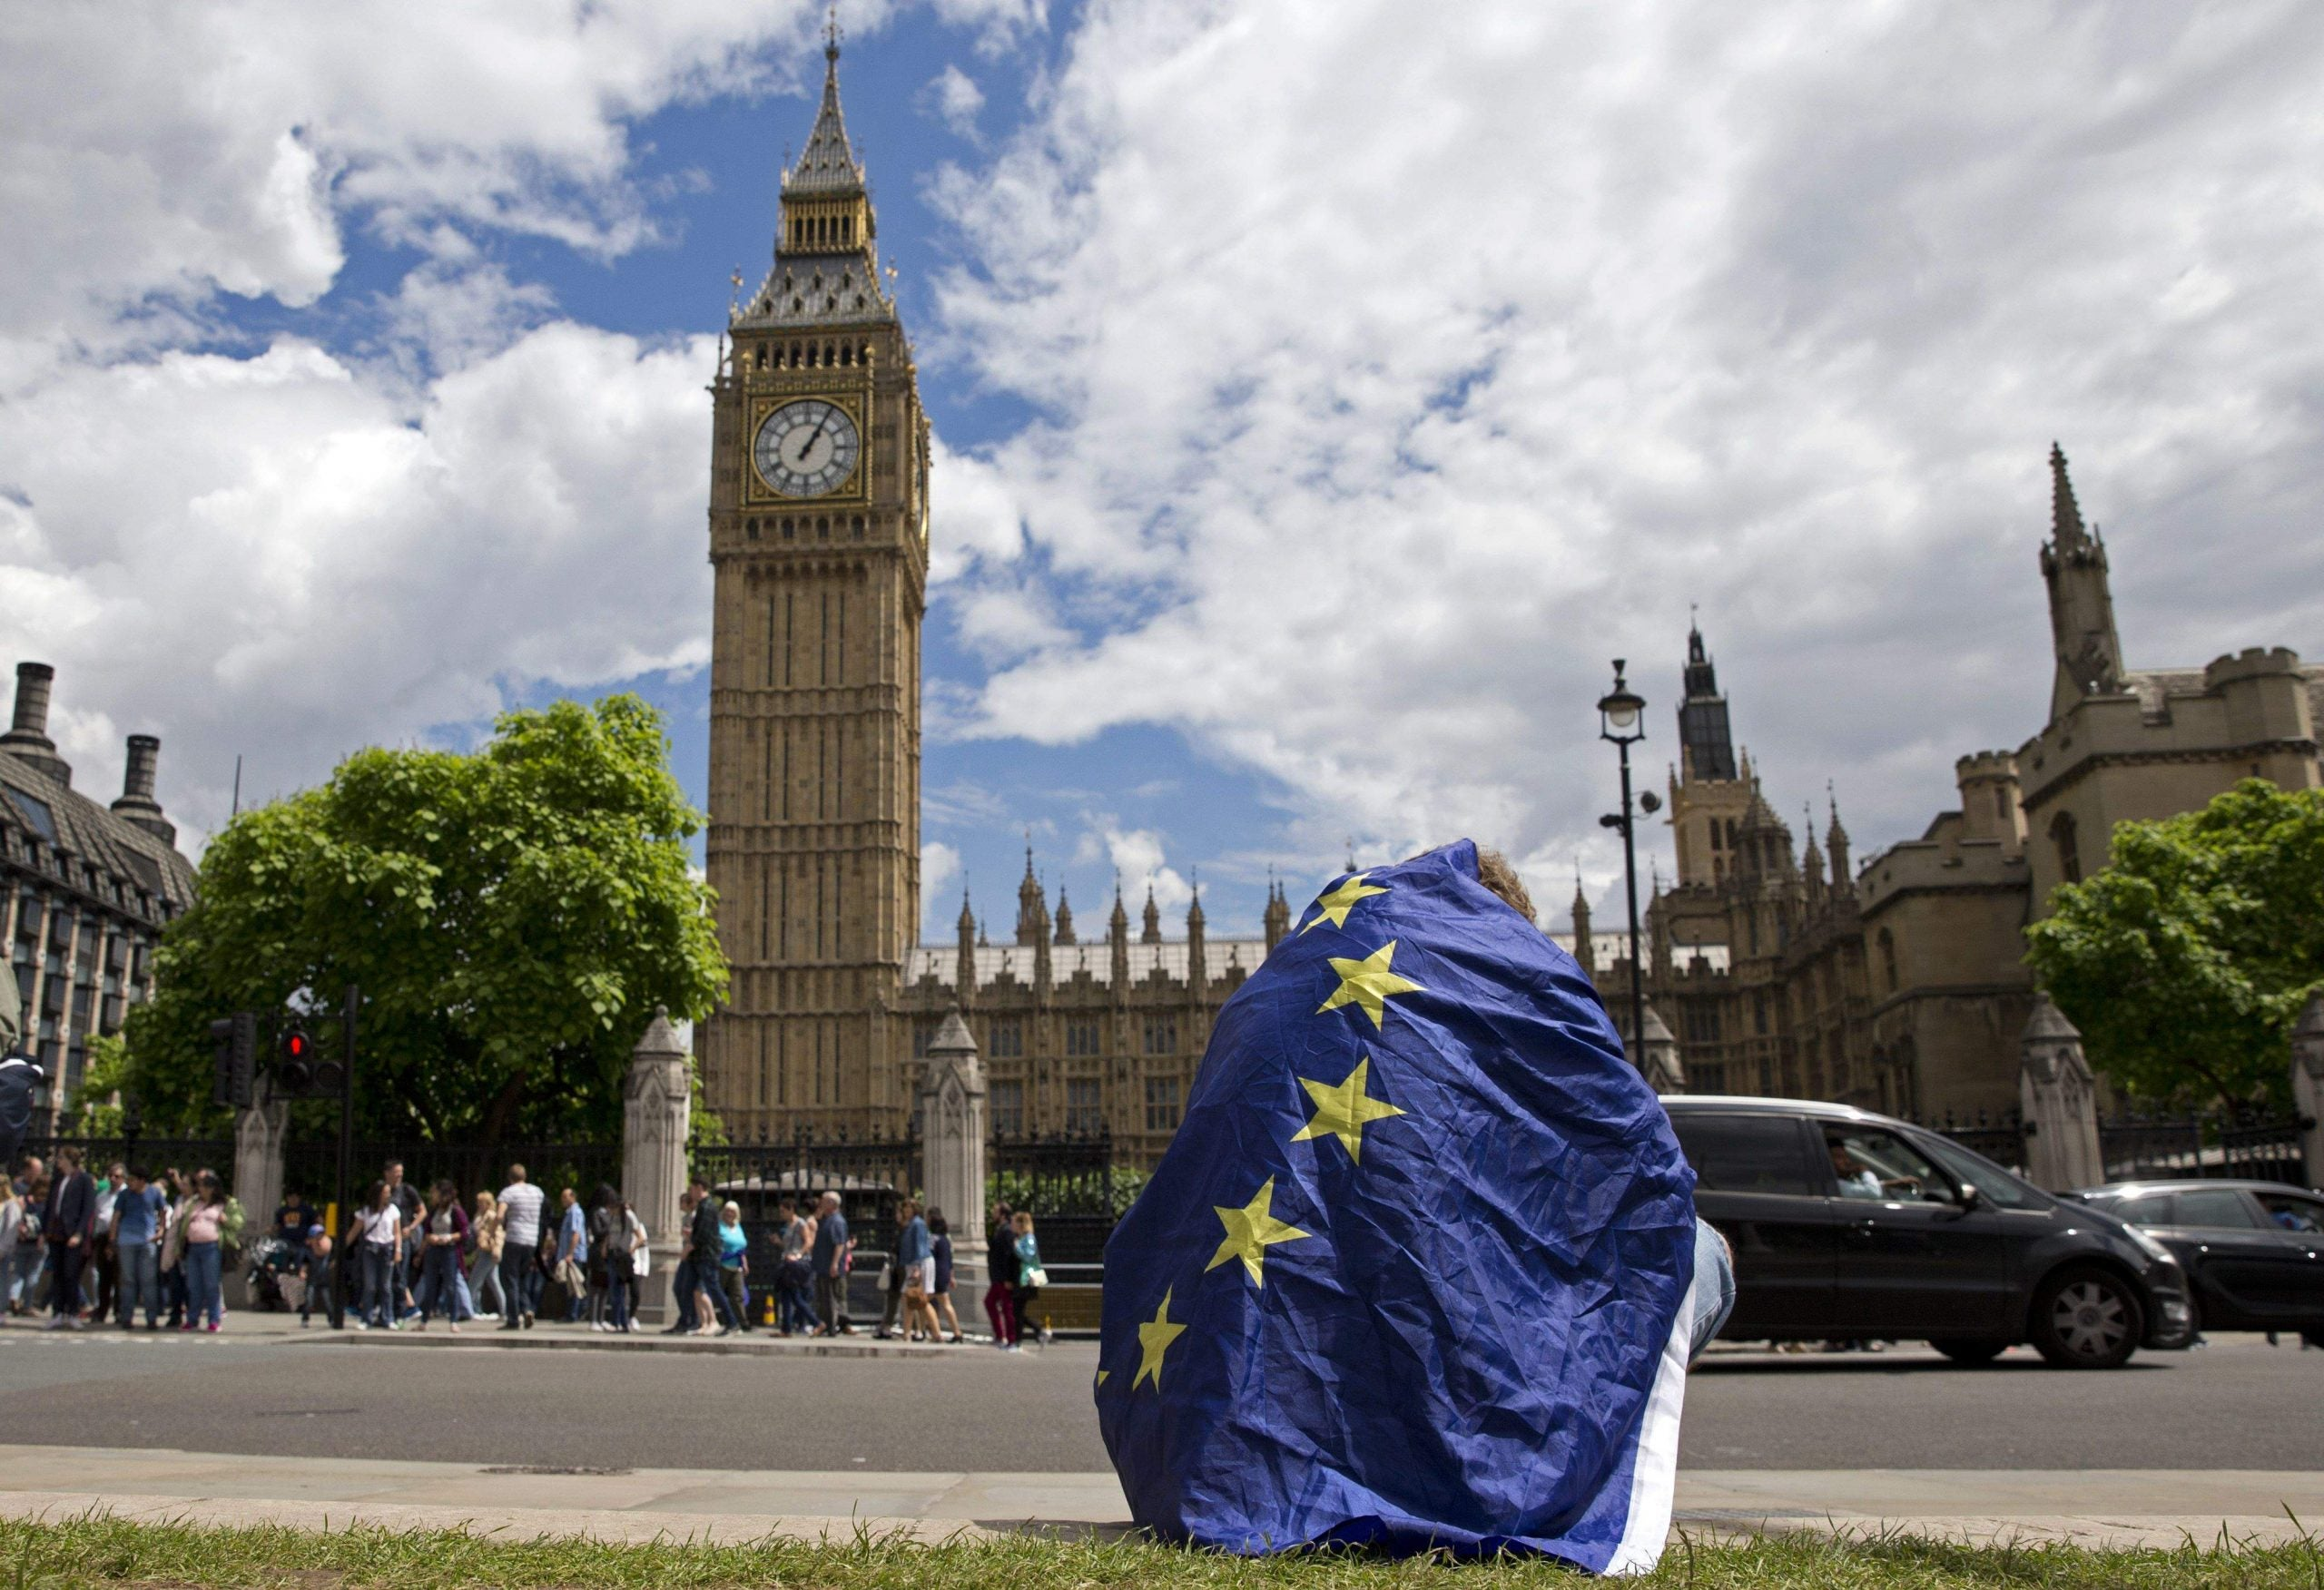 The Remainers aim to beat Brexit by playing a long game